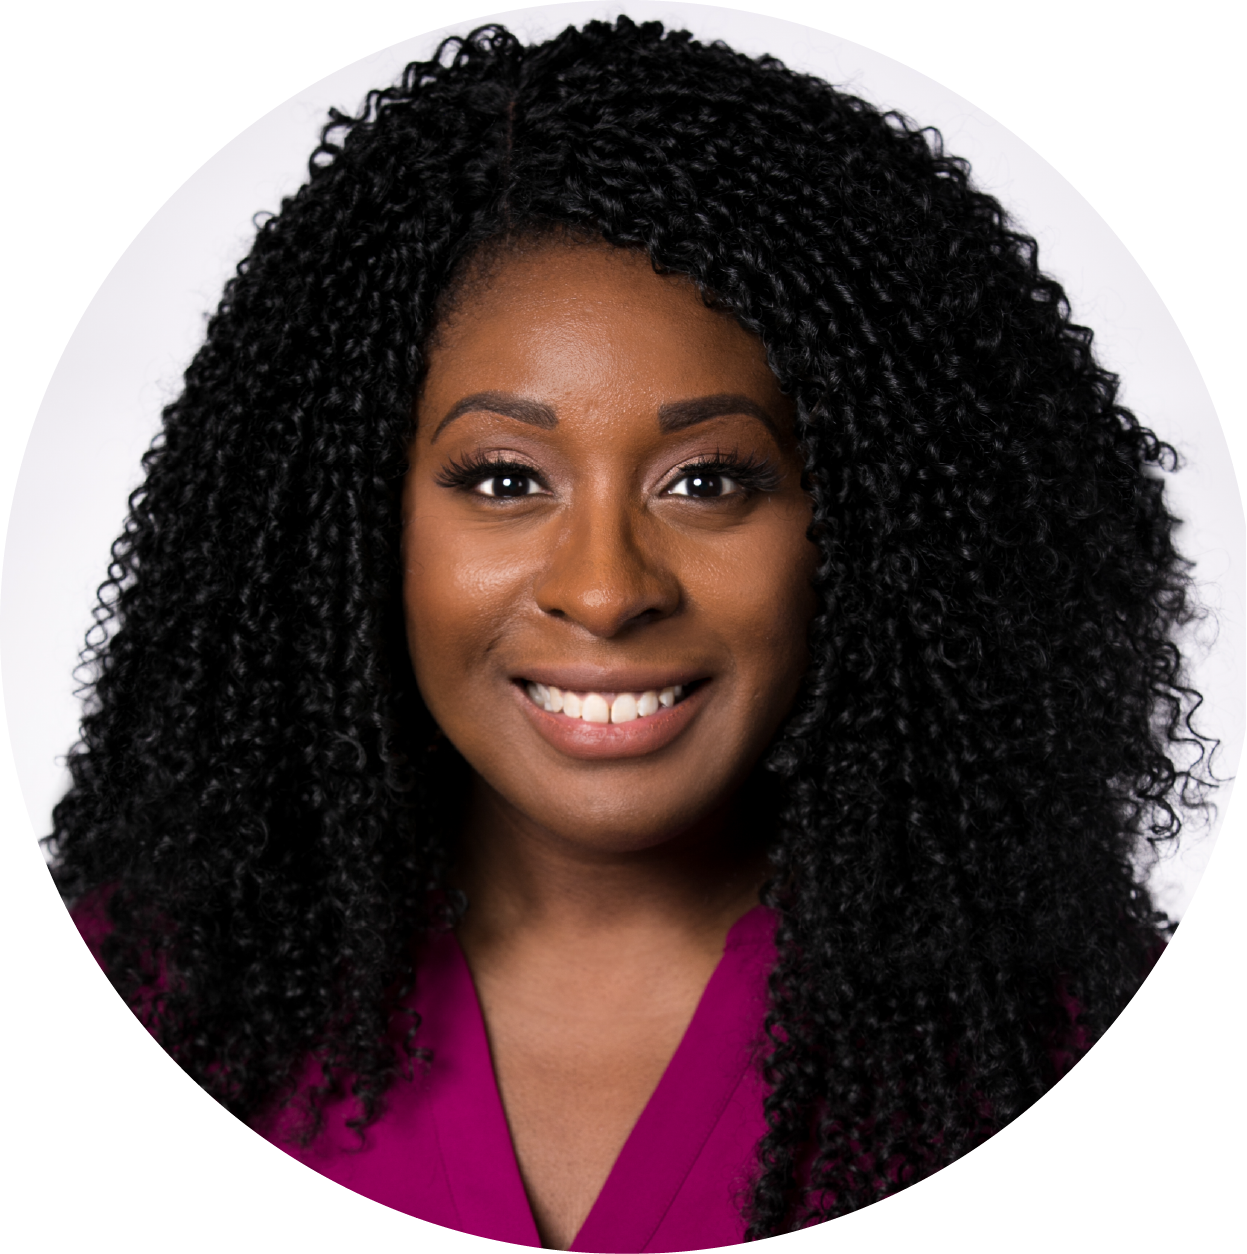 Rema Morgan-Aluko, Speaker at Women Impact Tech